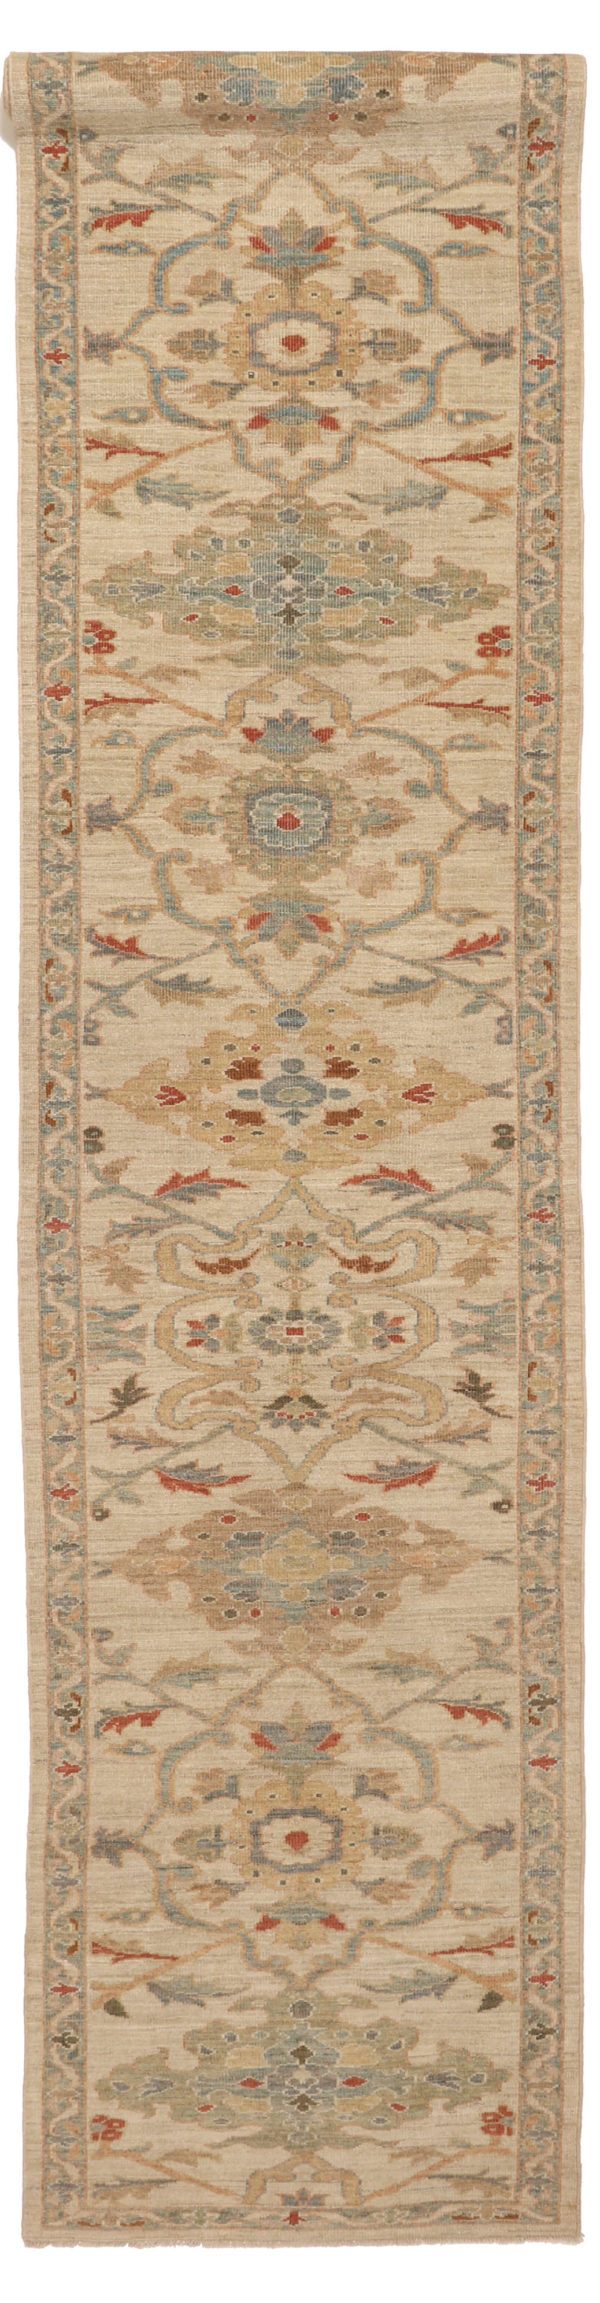 363520 Soltanabad Size 592x103 Cm 1 600x2303